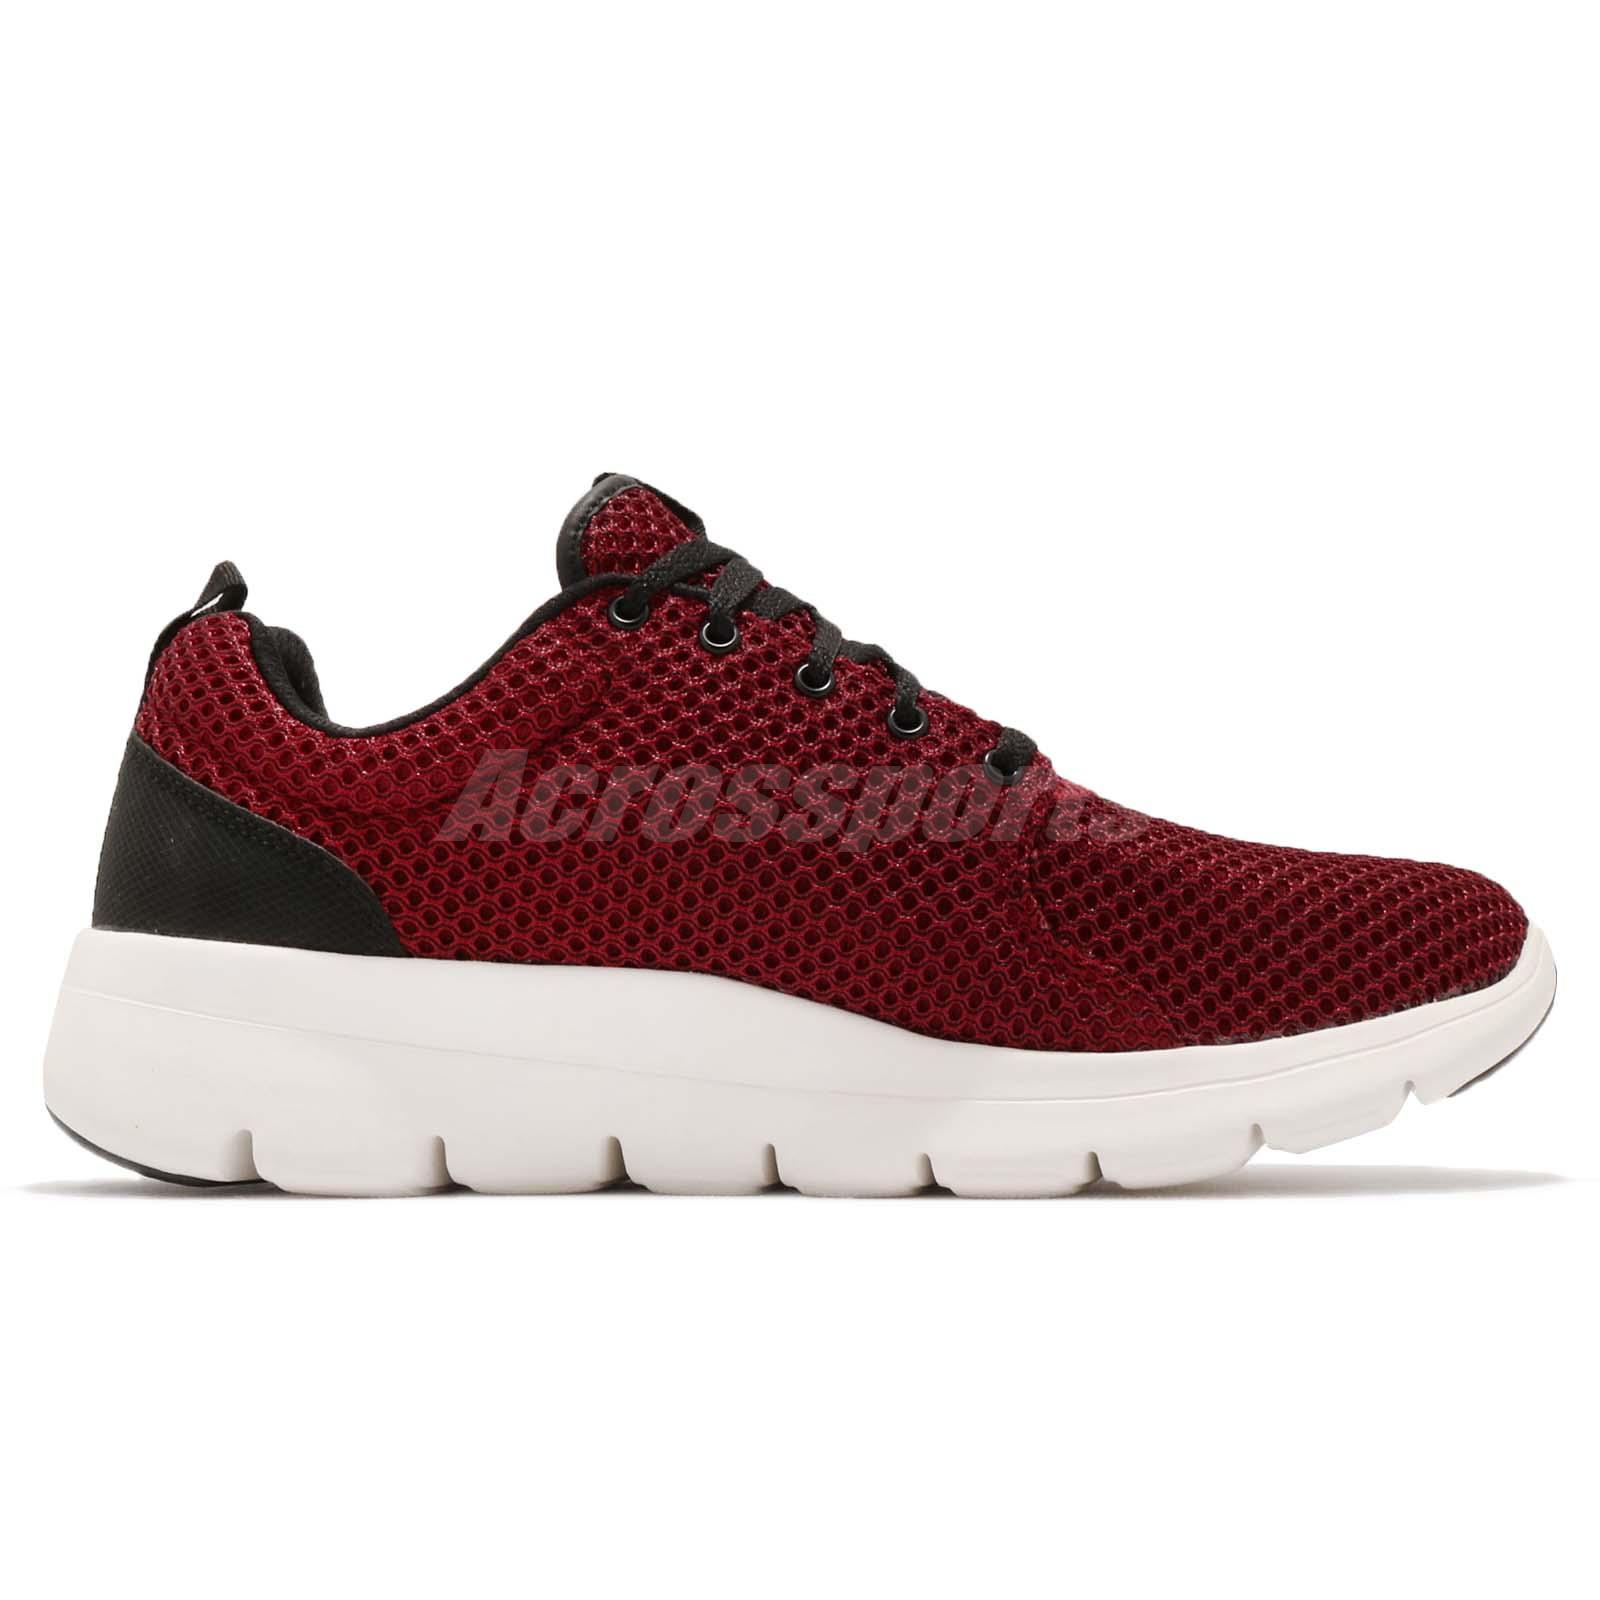 Details about Skechers Marauder Red Black White Men Running Walking Shoes Sneakers 52832 RED